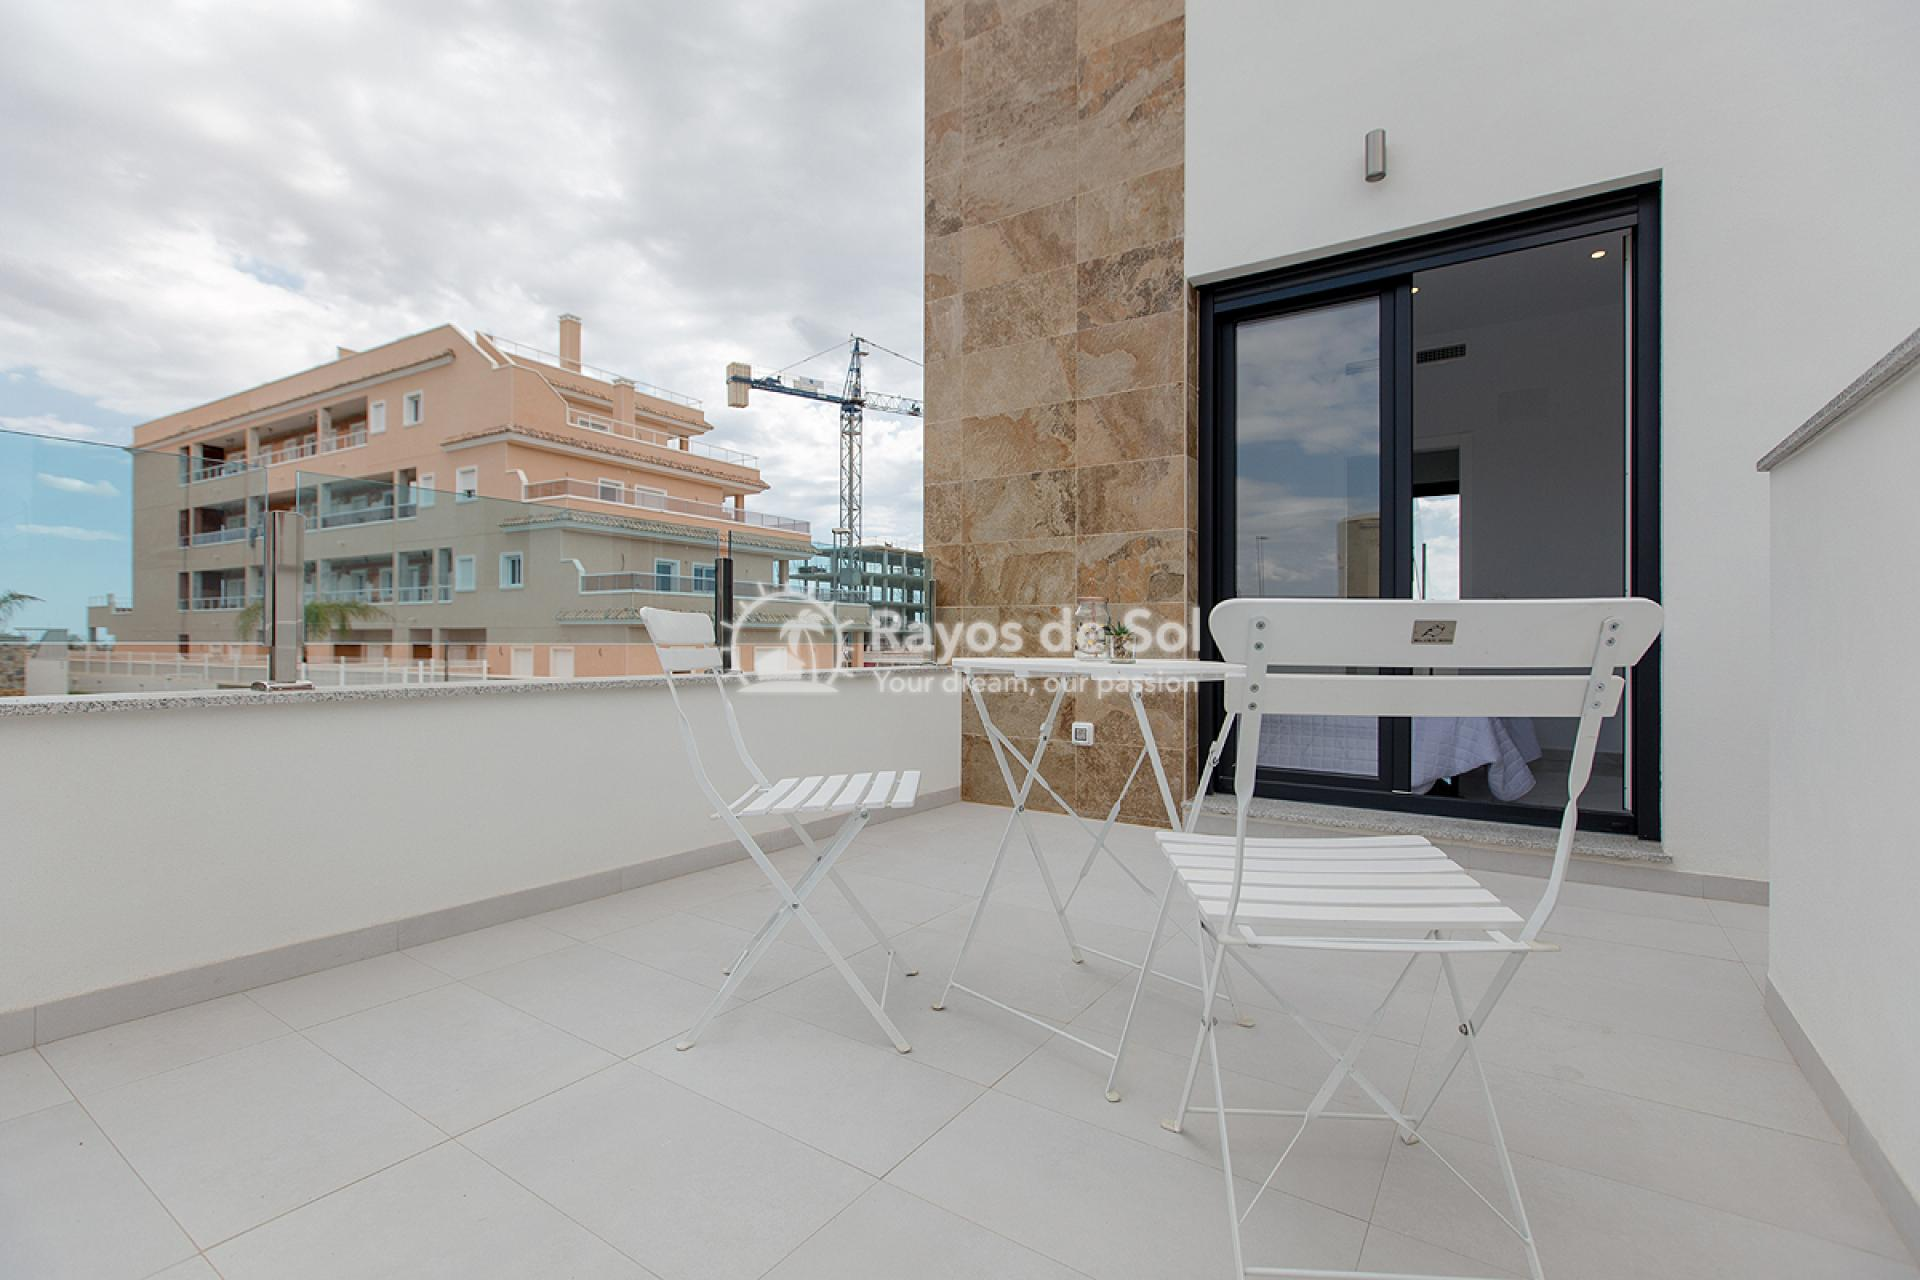 Townhouse  in Villamartin, Costa Blanca (AltosV Triplex) - 27